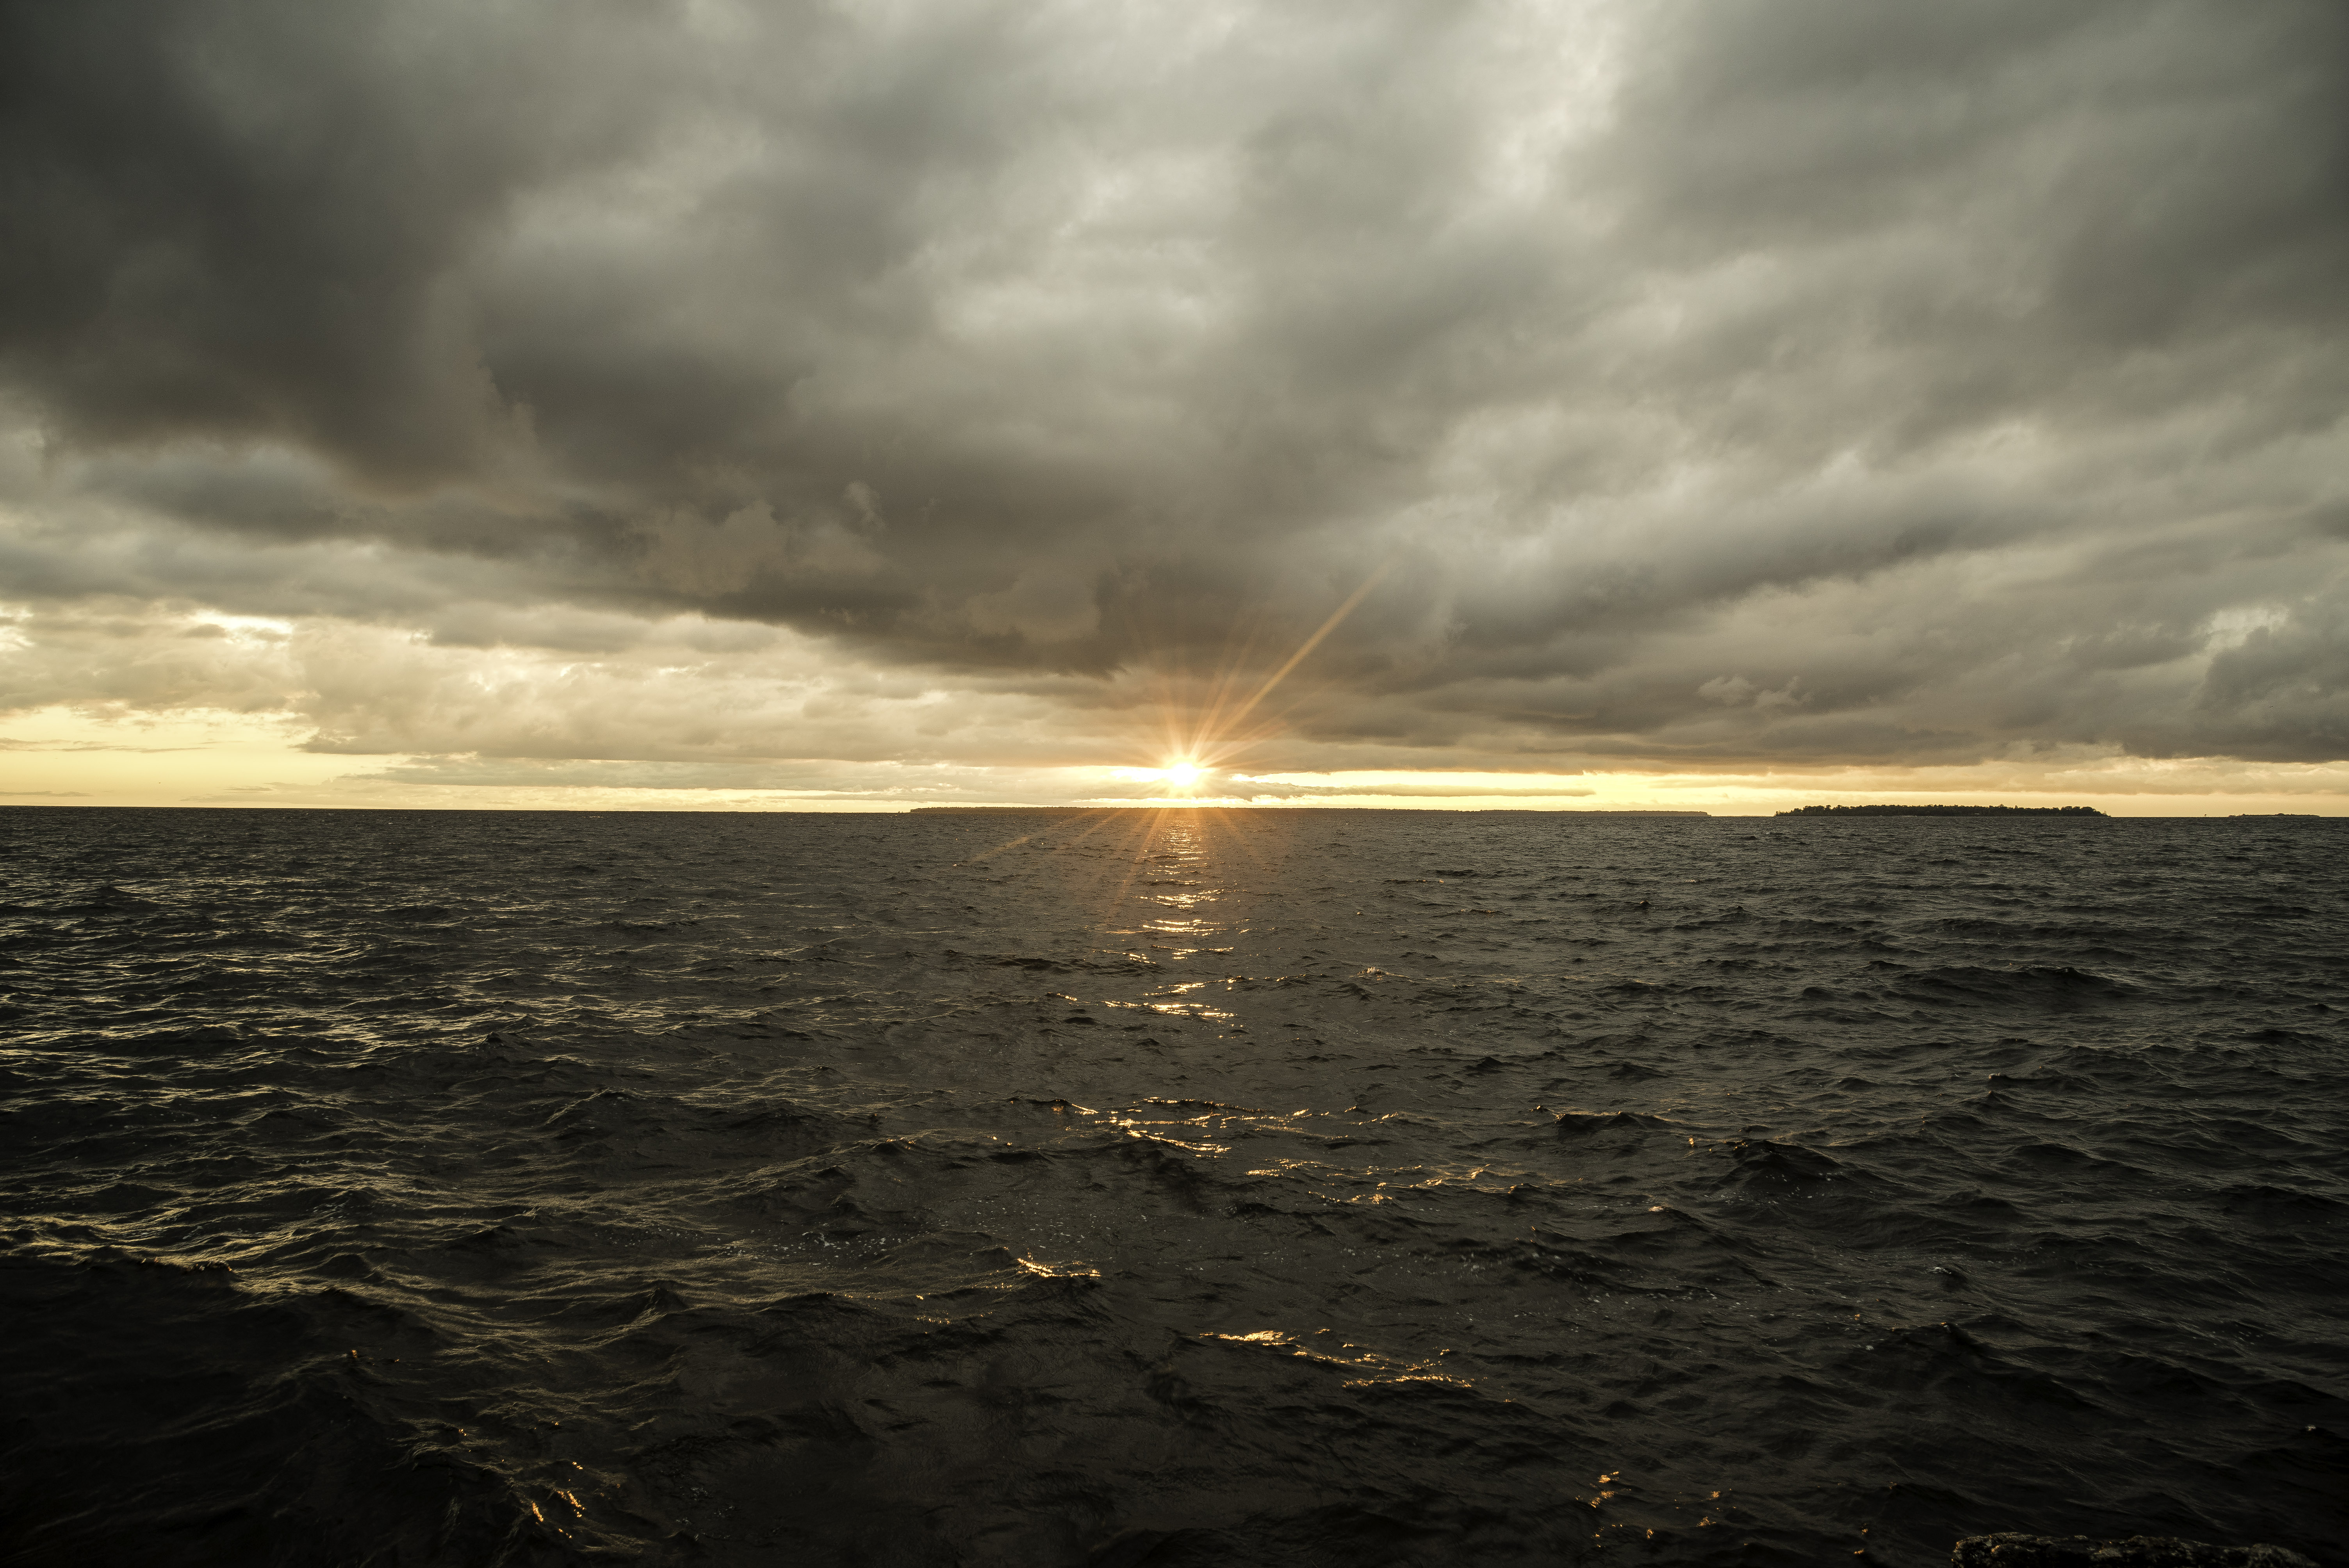 sunset under the clouds over lake michigan at peninsula